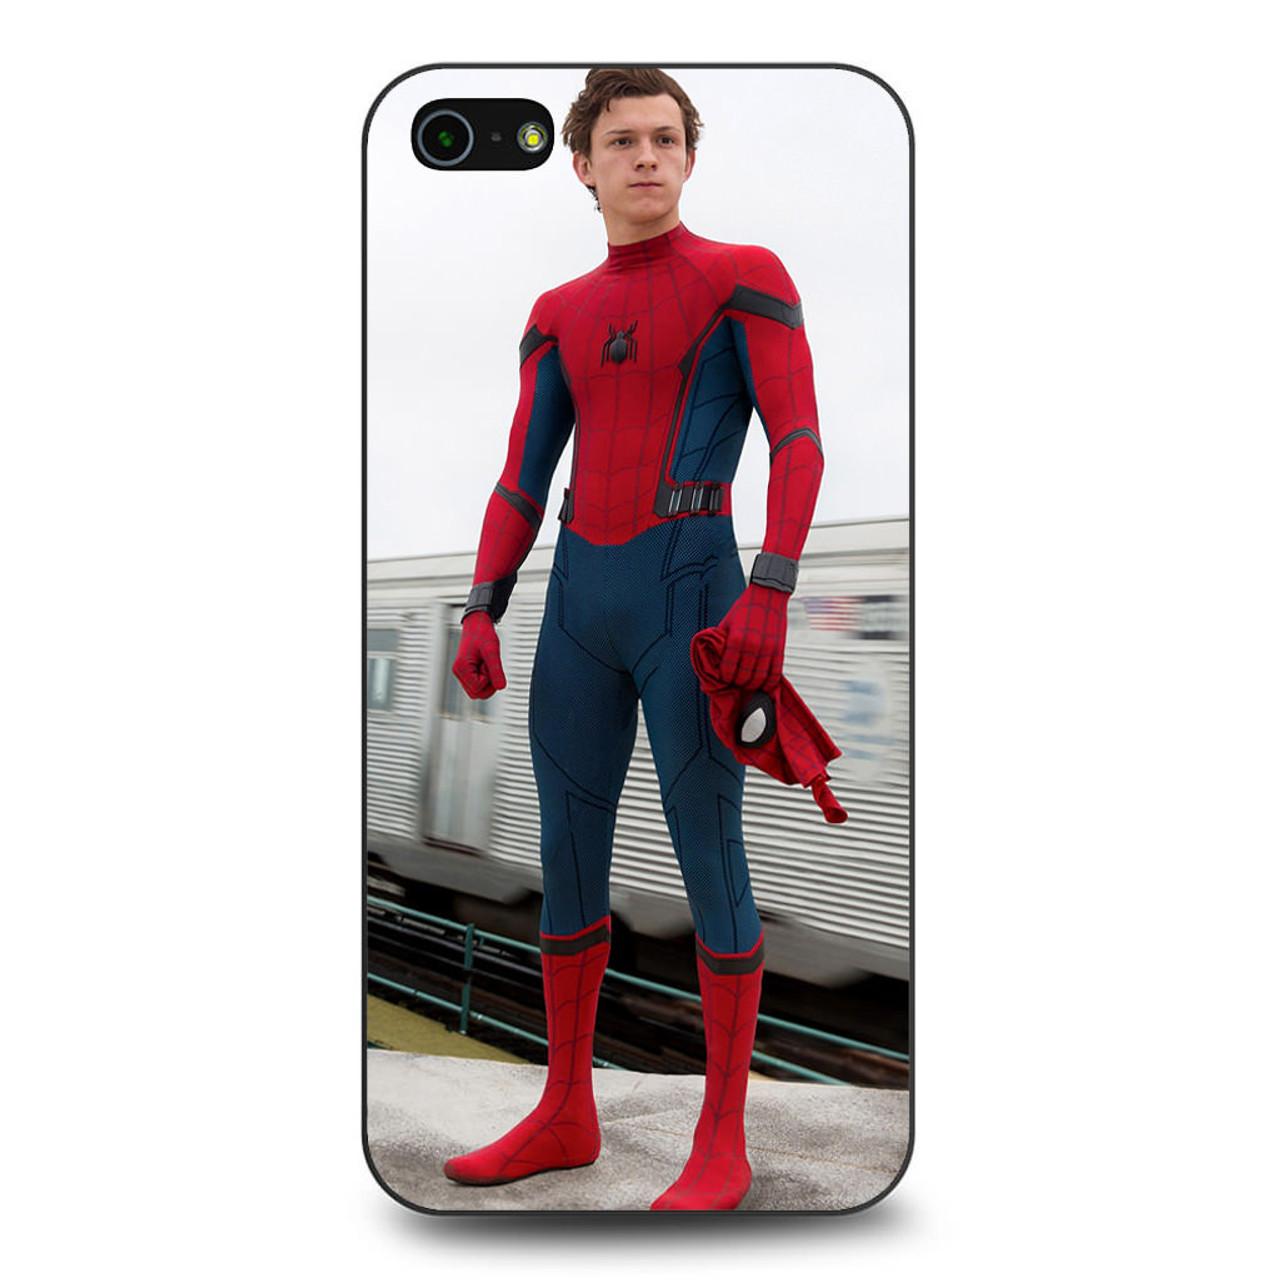 huge selection of 0604c a452c Spiderman Homecoming Tom Holland iPhone 5/5S/SE Case